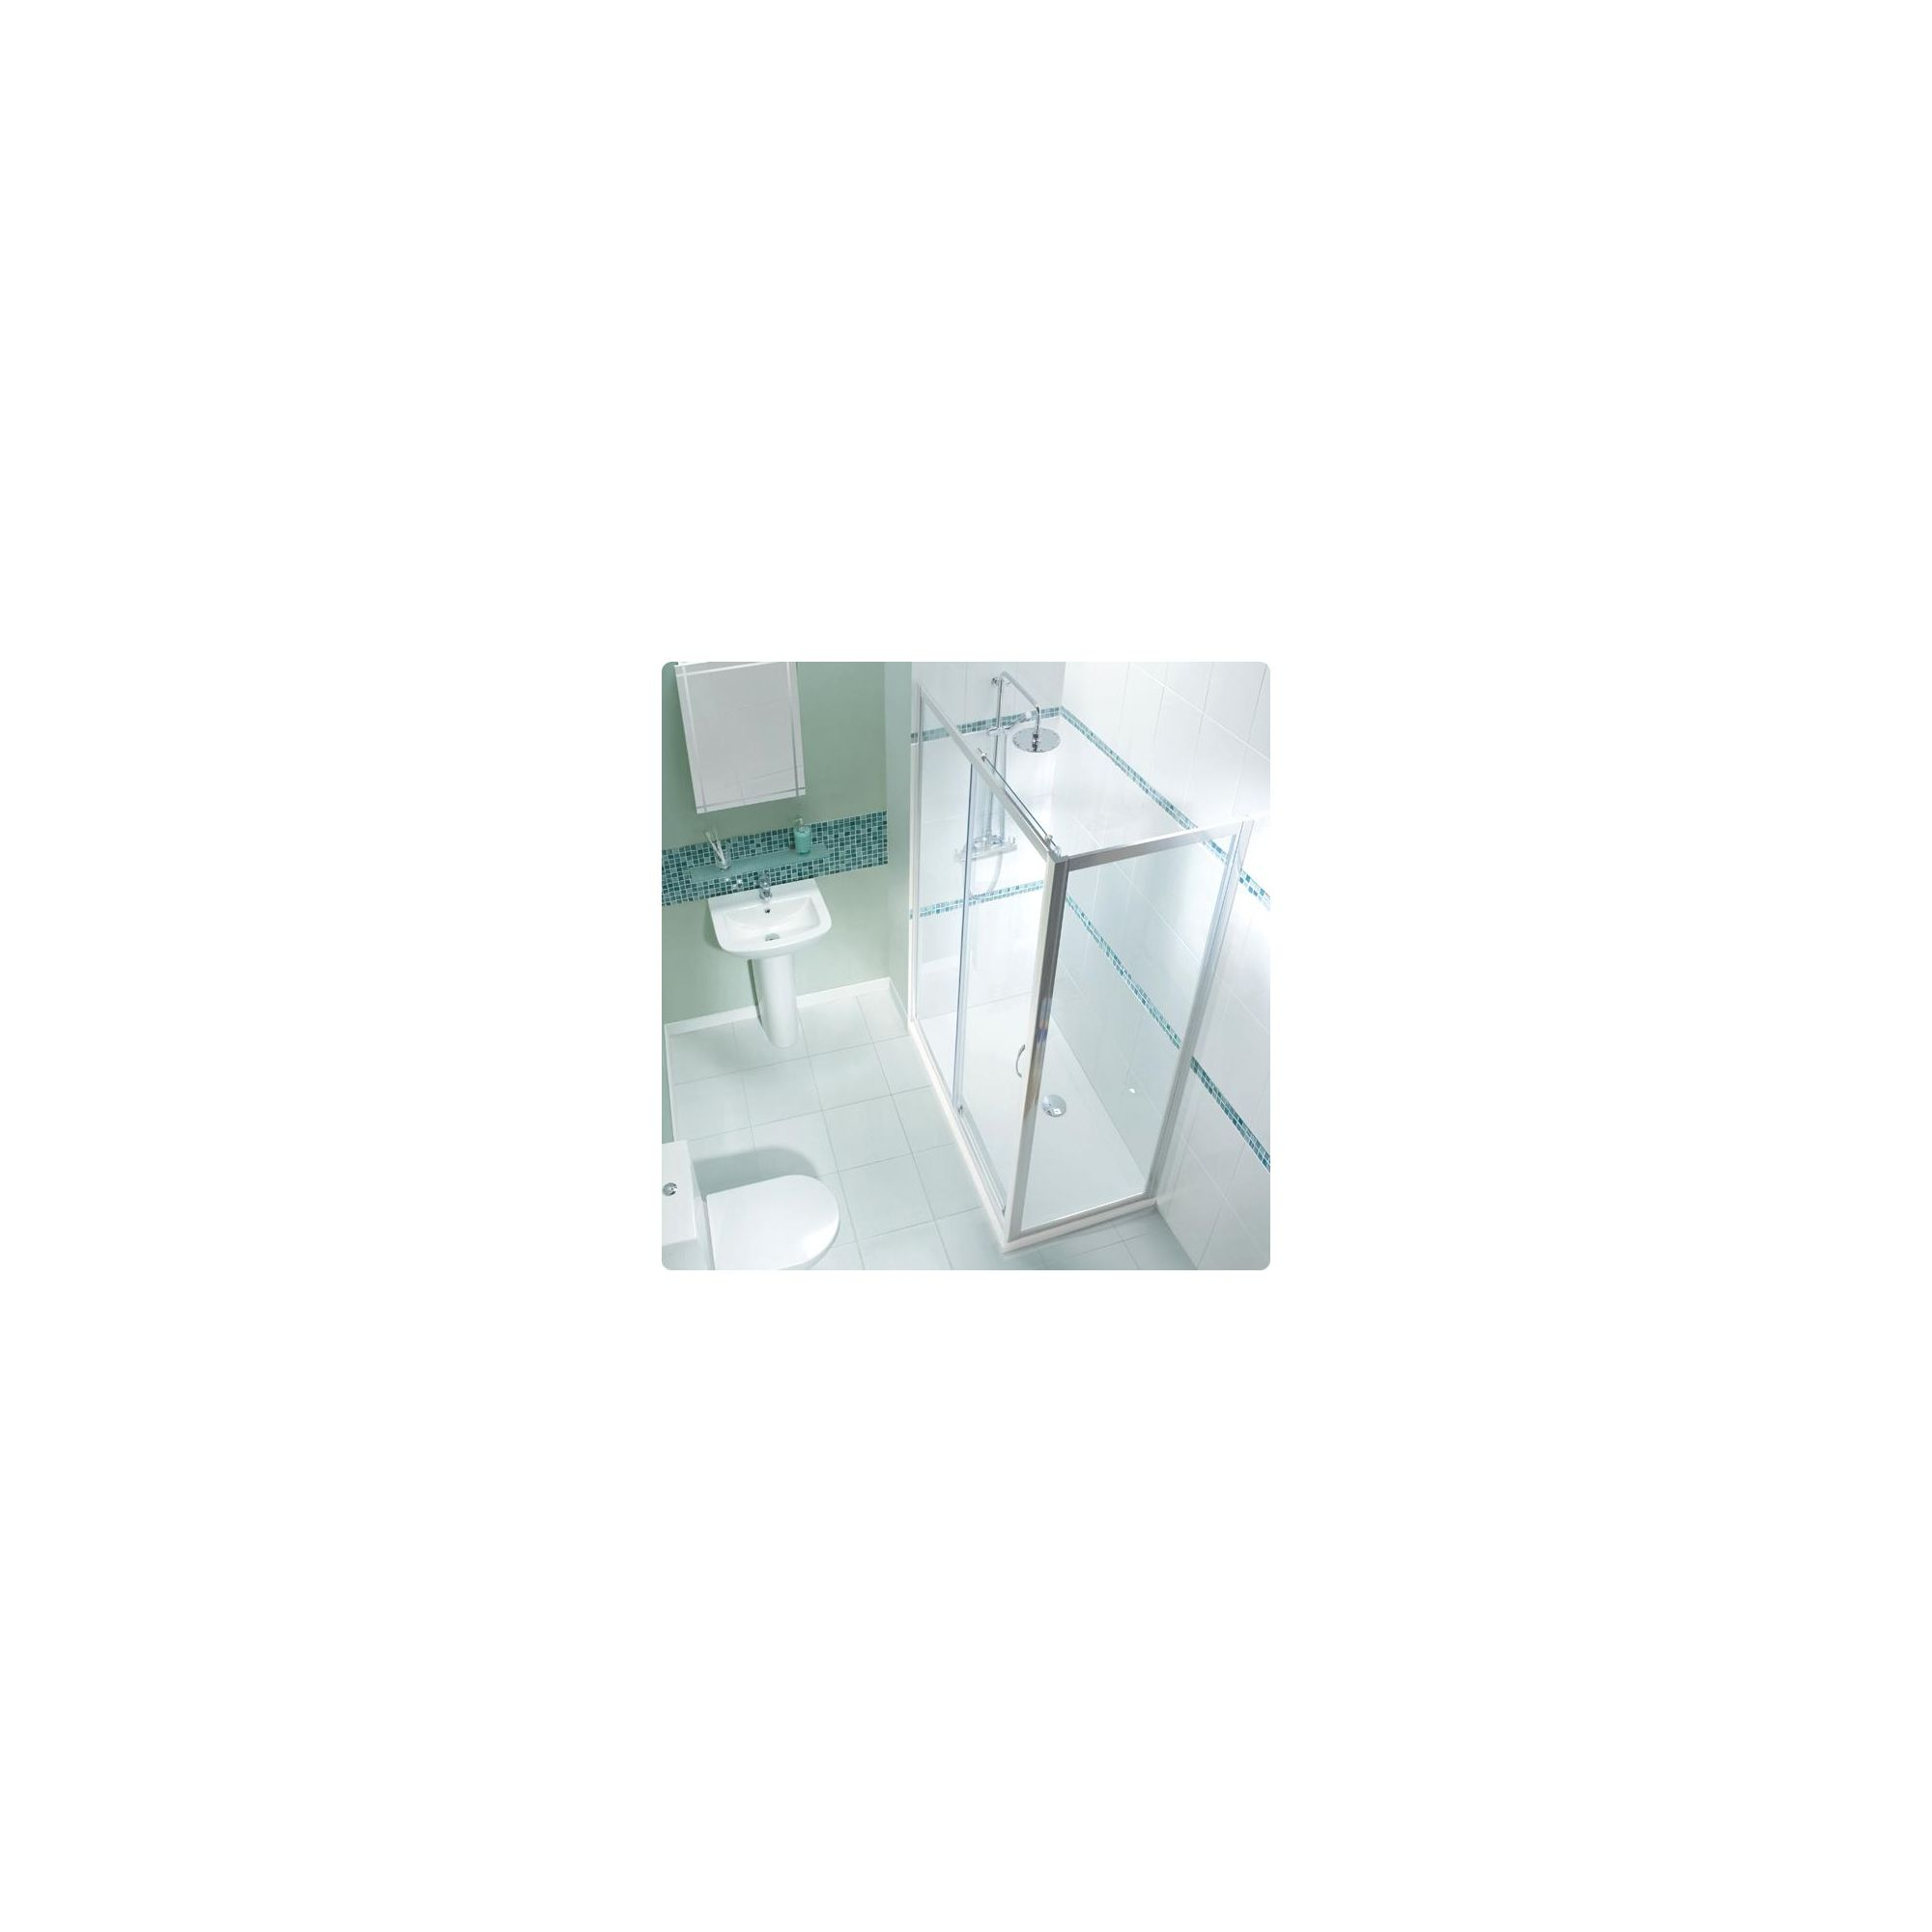 Balterley Framed Sliding Shower Enclosure, 1200mm x 700mm, Low Profile Tray, 6mm Glass at Tesco Direct